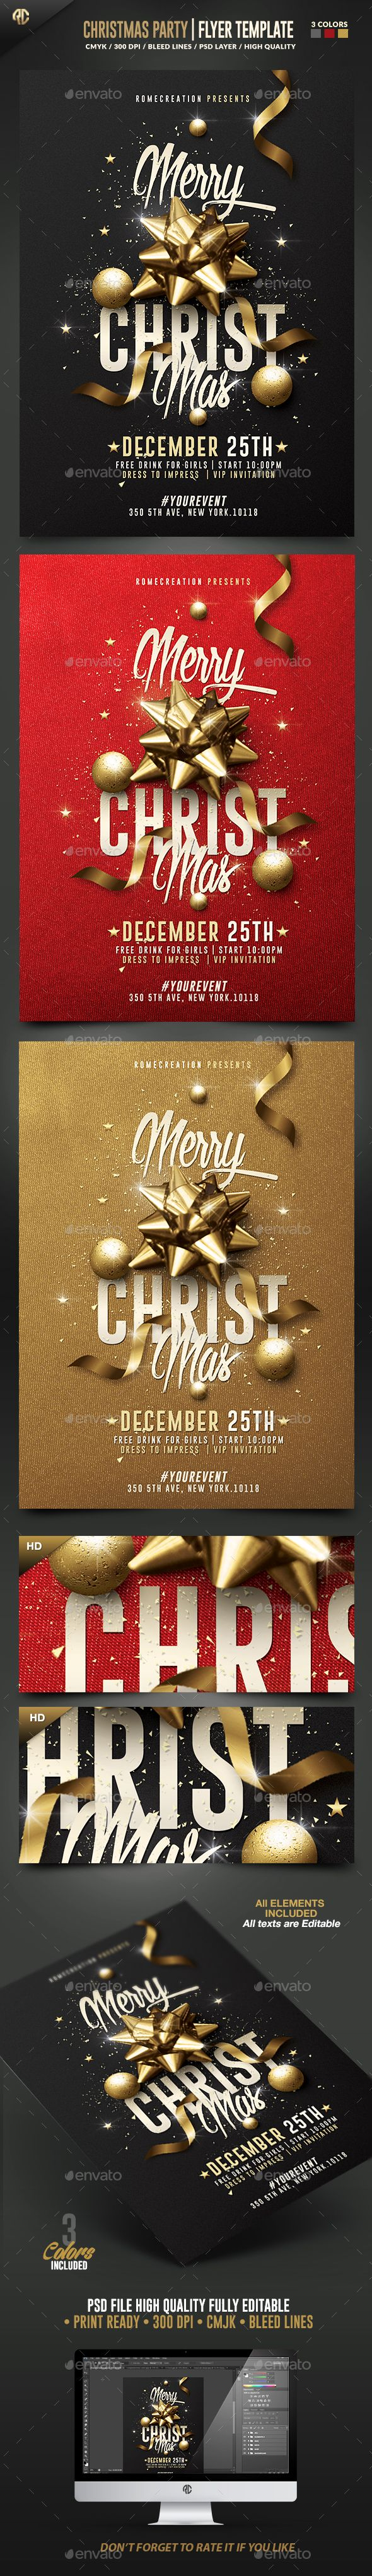 Classy Christmas Party Flyer Template PSD #design Download: http://graphicriver.net/item/classy-christmas-party-psd-flyer-template/13707159?ref=ksioks